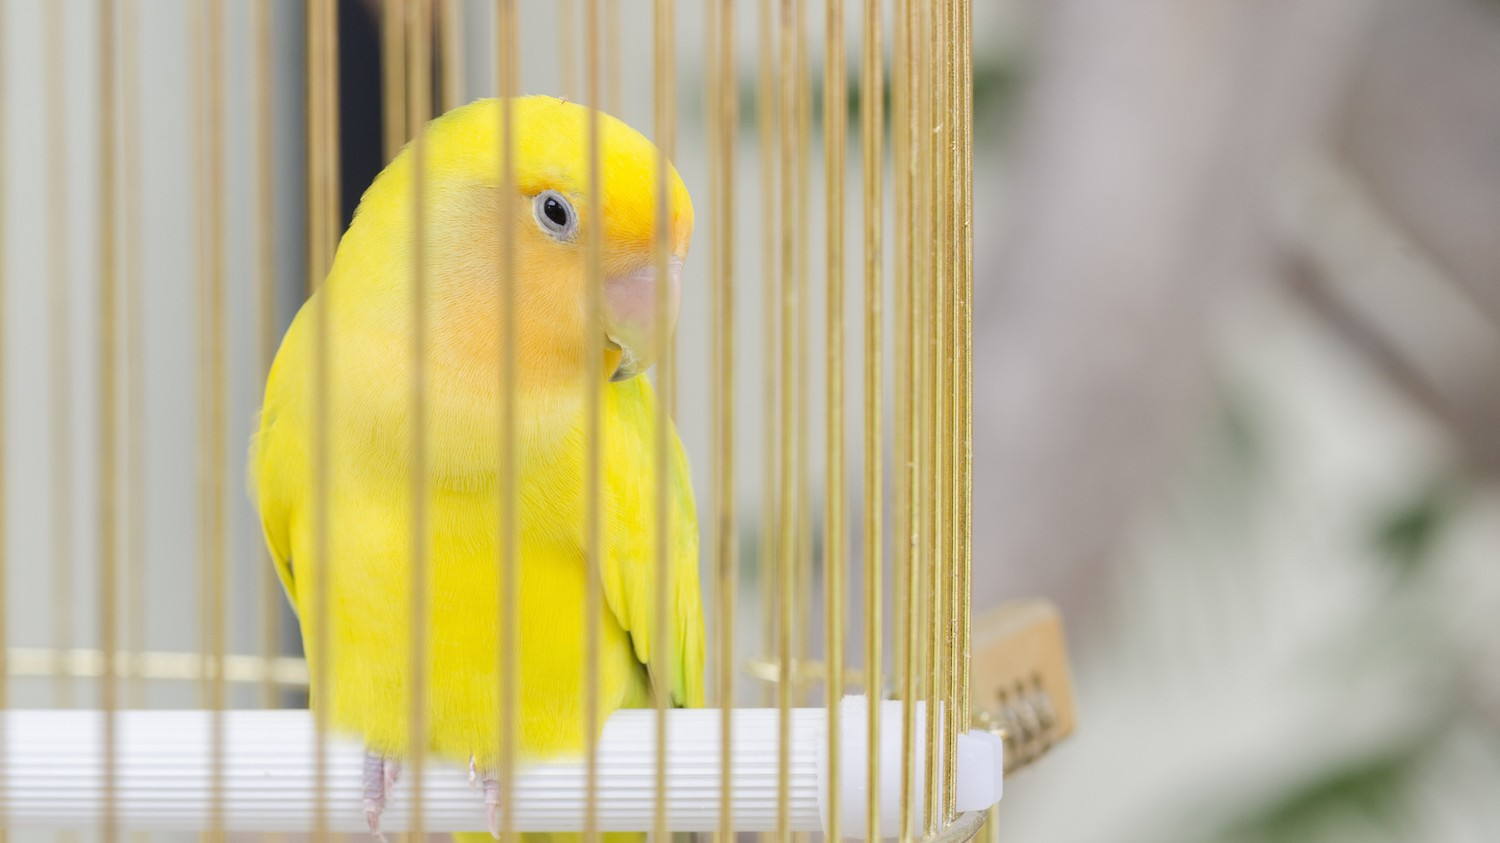 Dark Web Child Porn Sites Are Using 'Warrant Canaries'